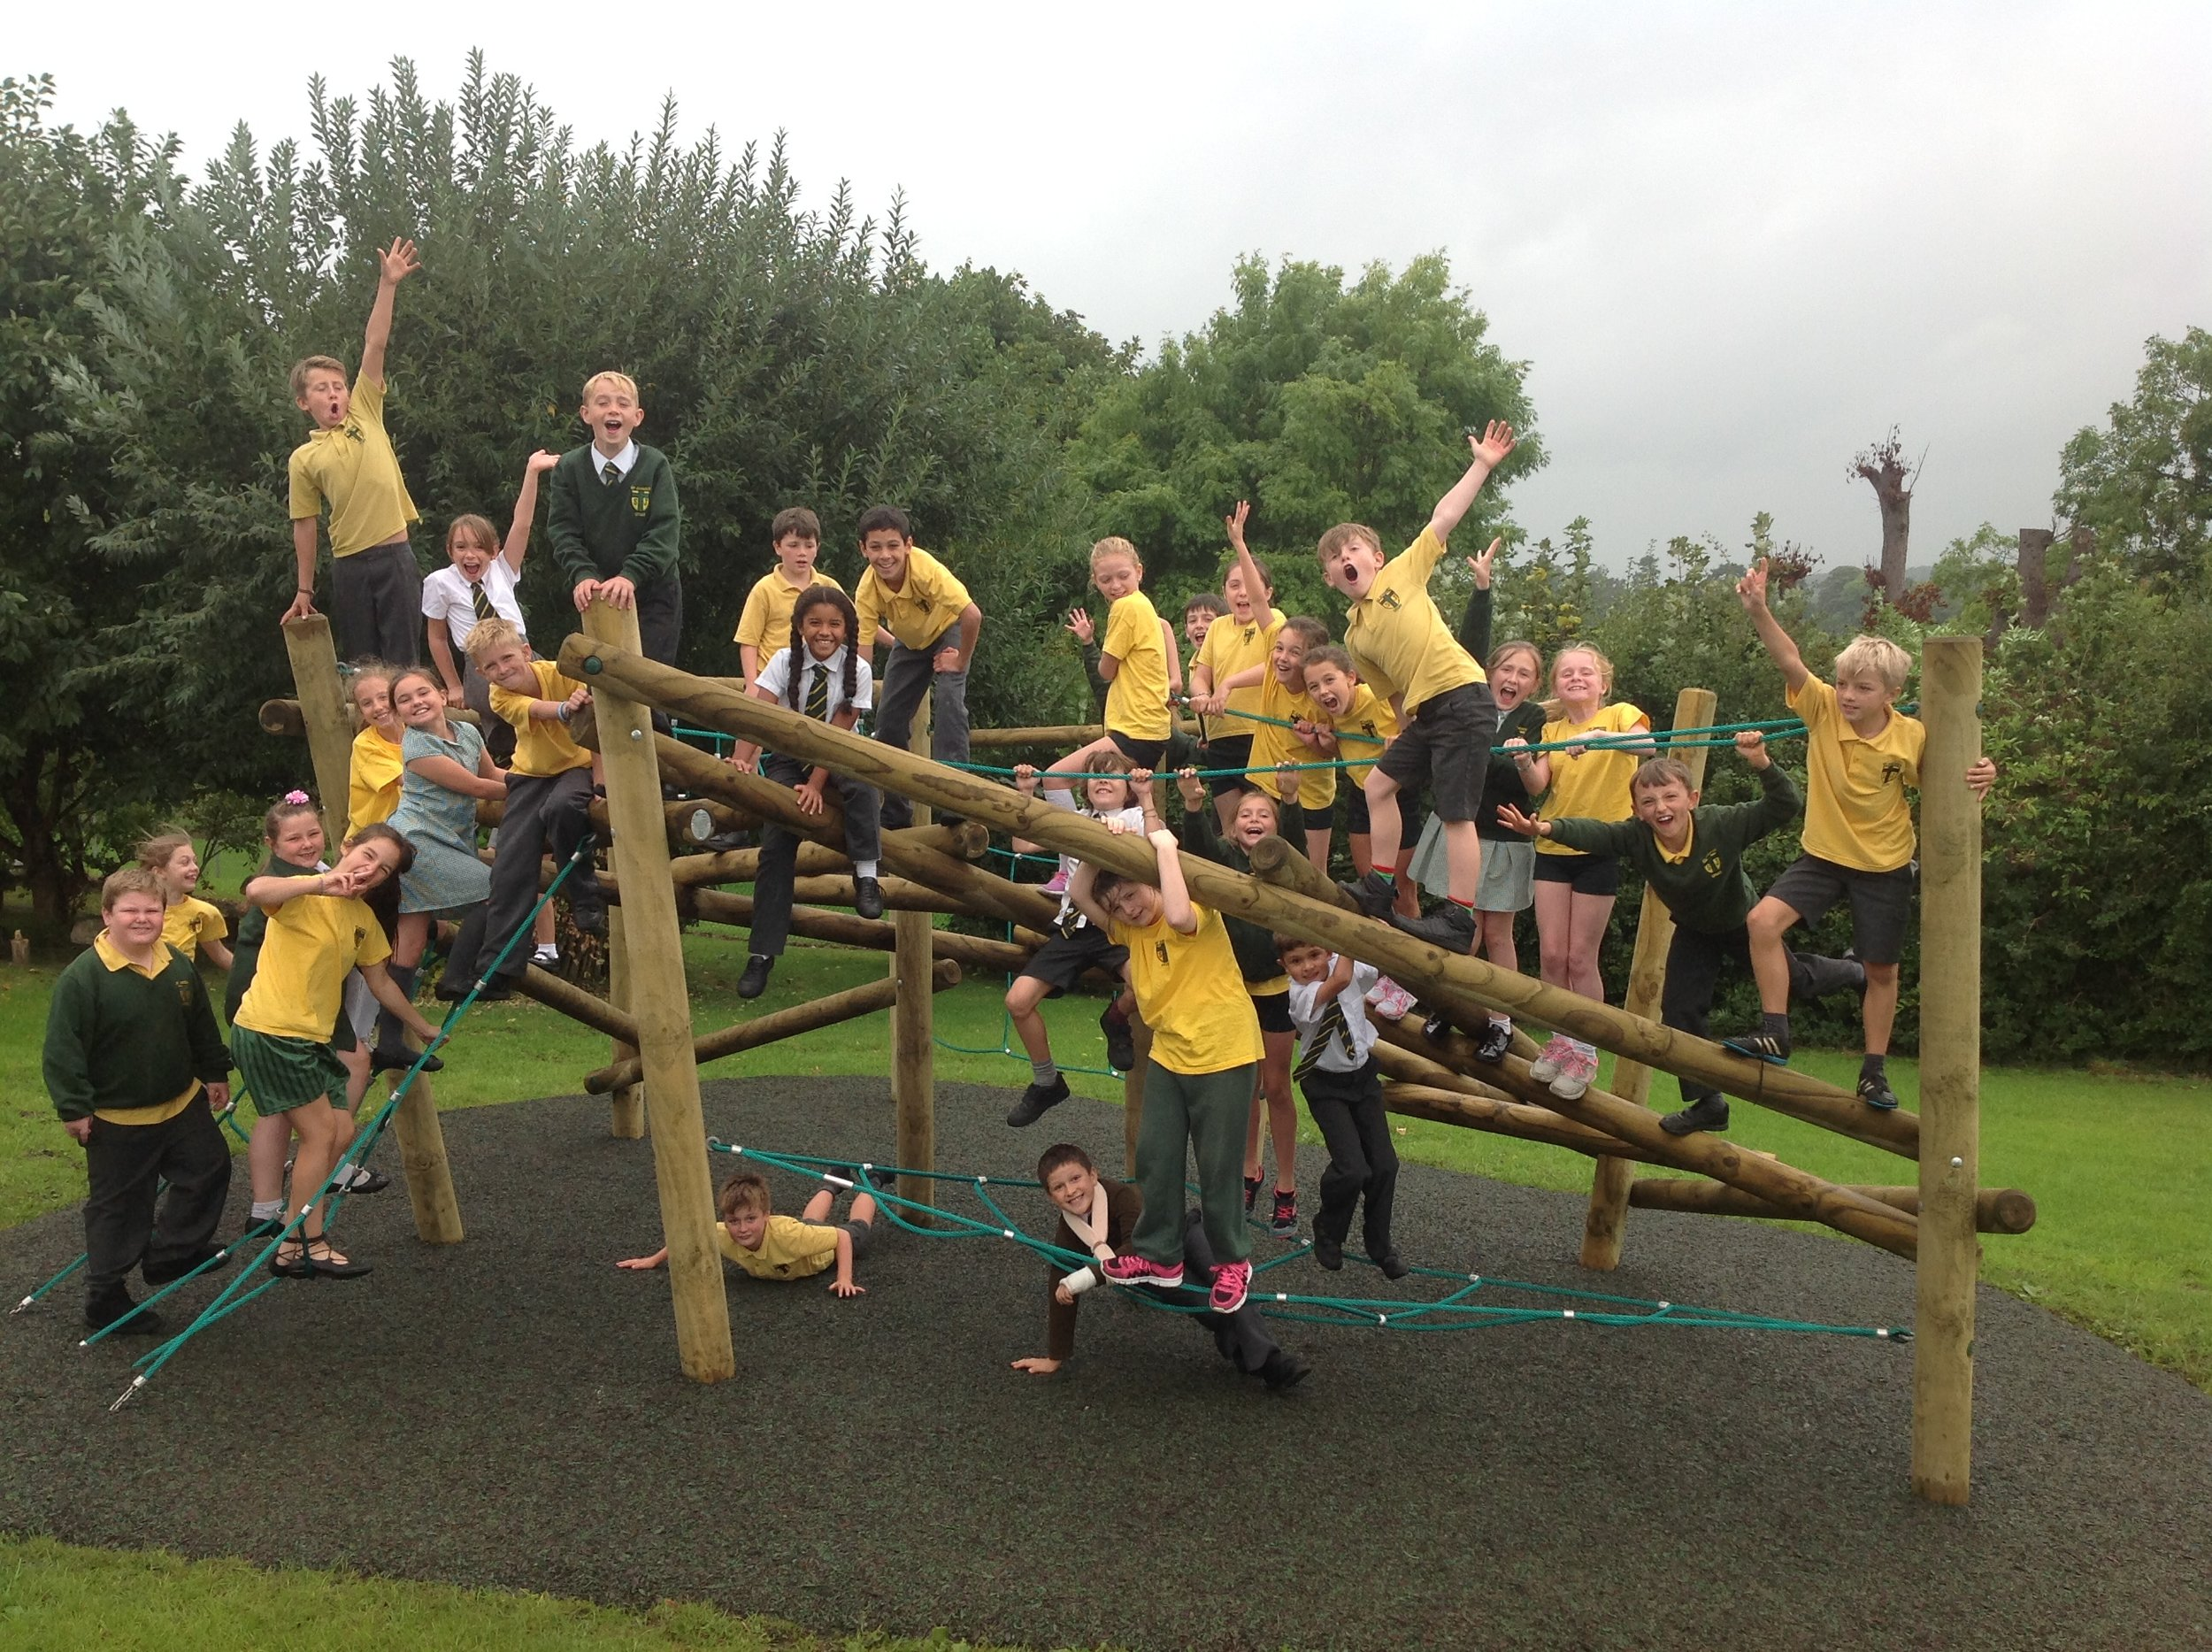 We have been enjoying monkeying around on the new adventure playground!